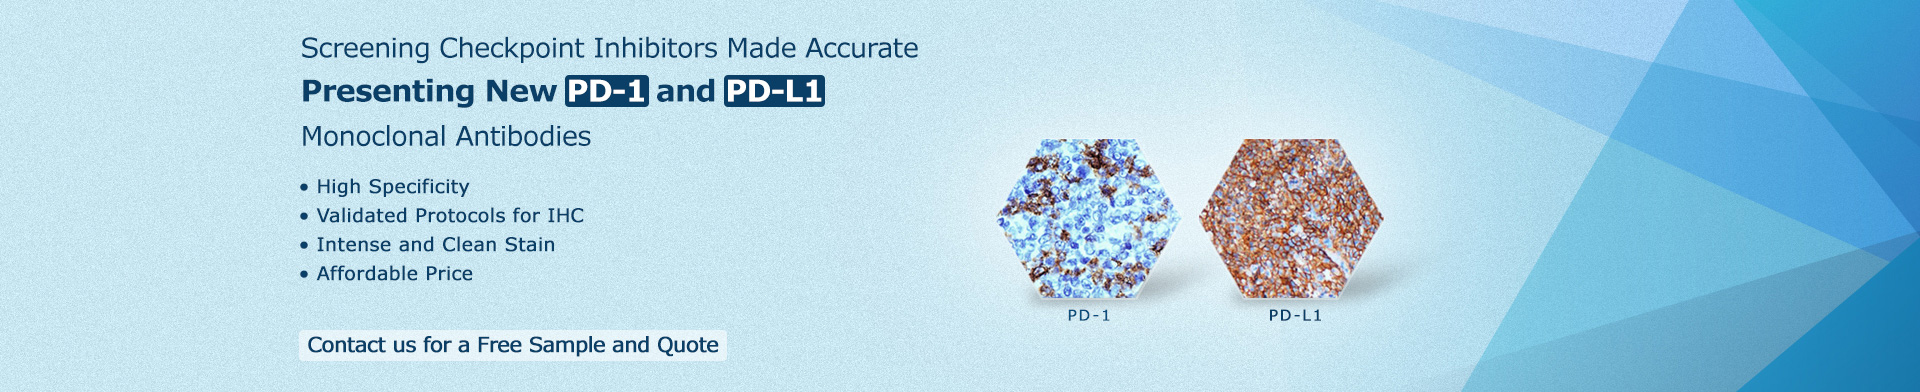 PD-1 and PD-L1 monoclonal antibodies for immunohistochemistry (IHC) biomarker screening